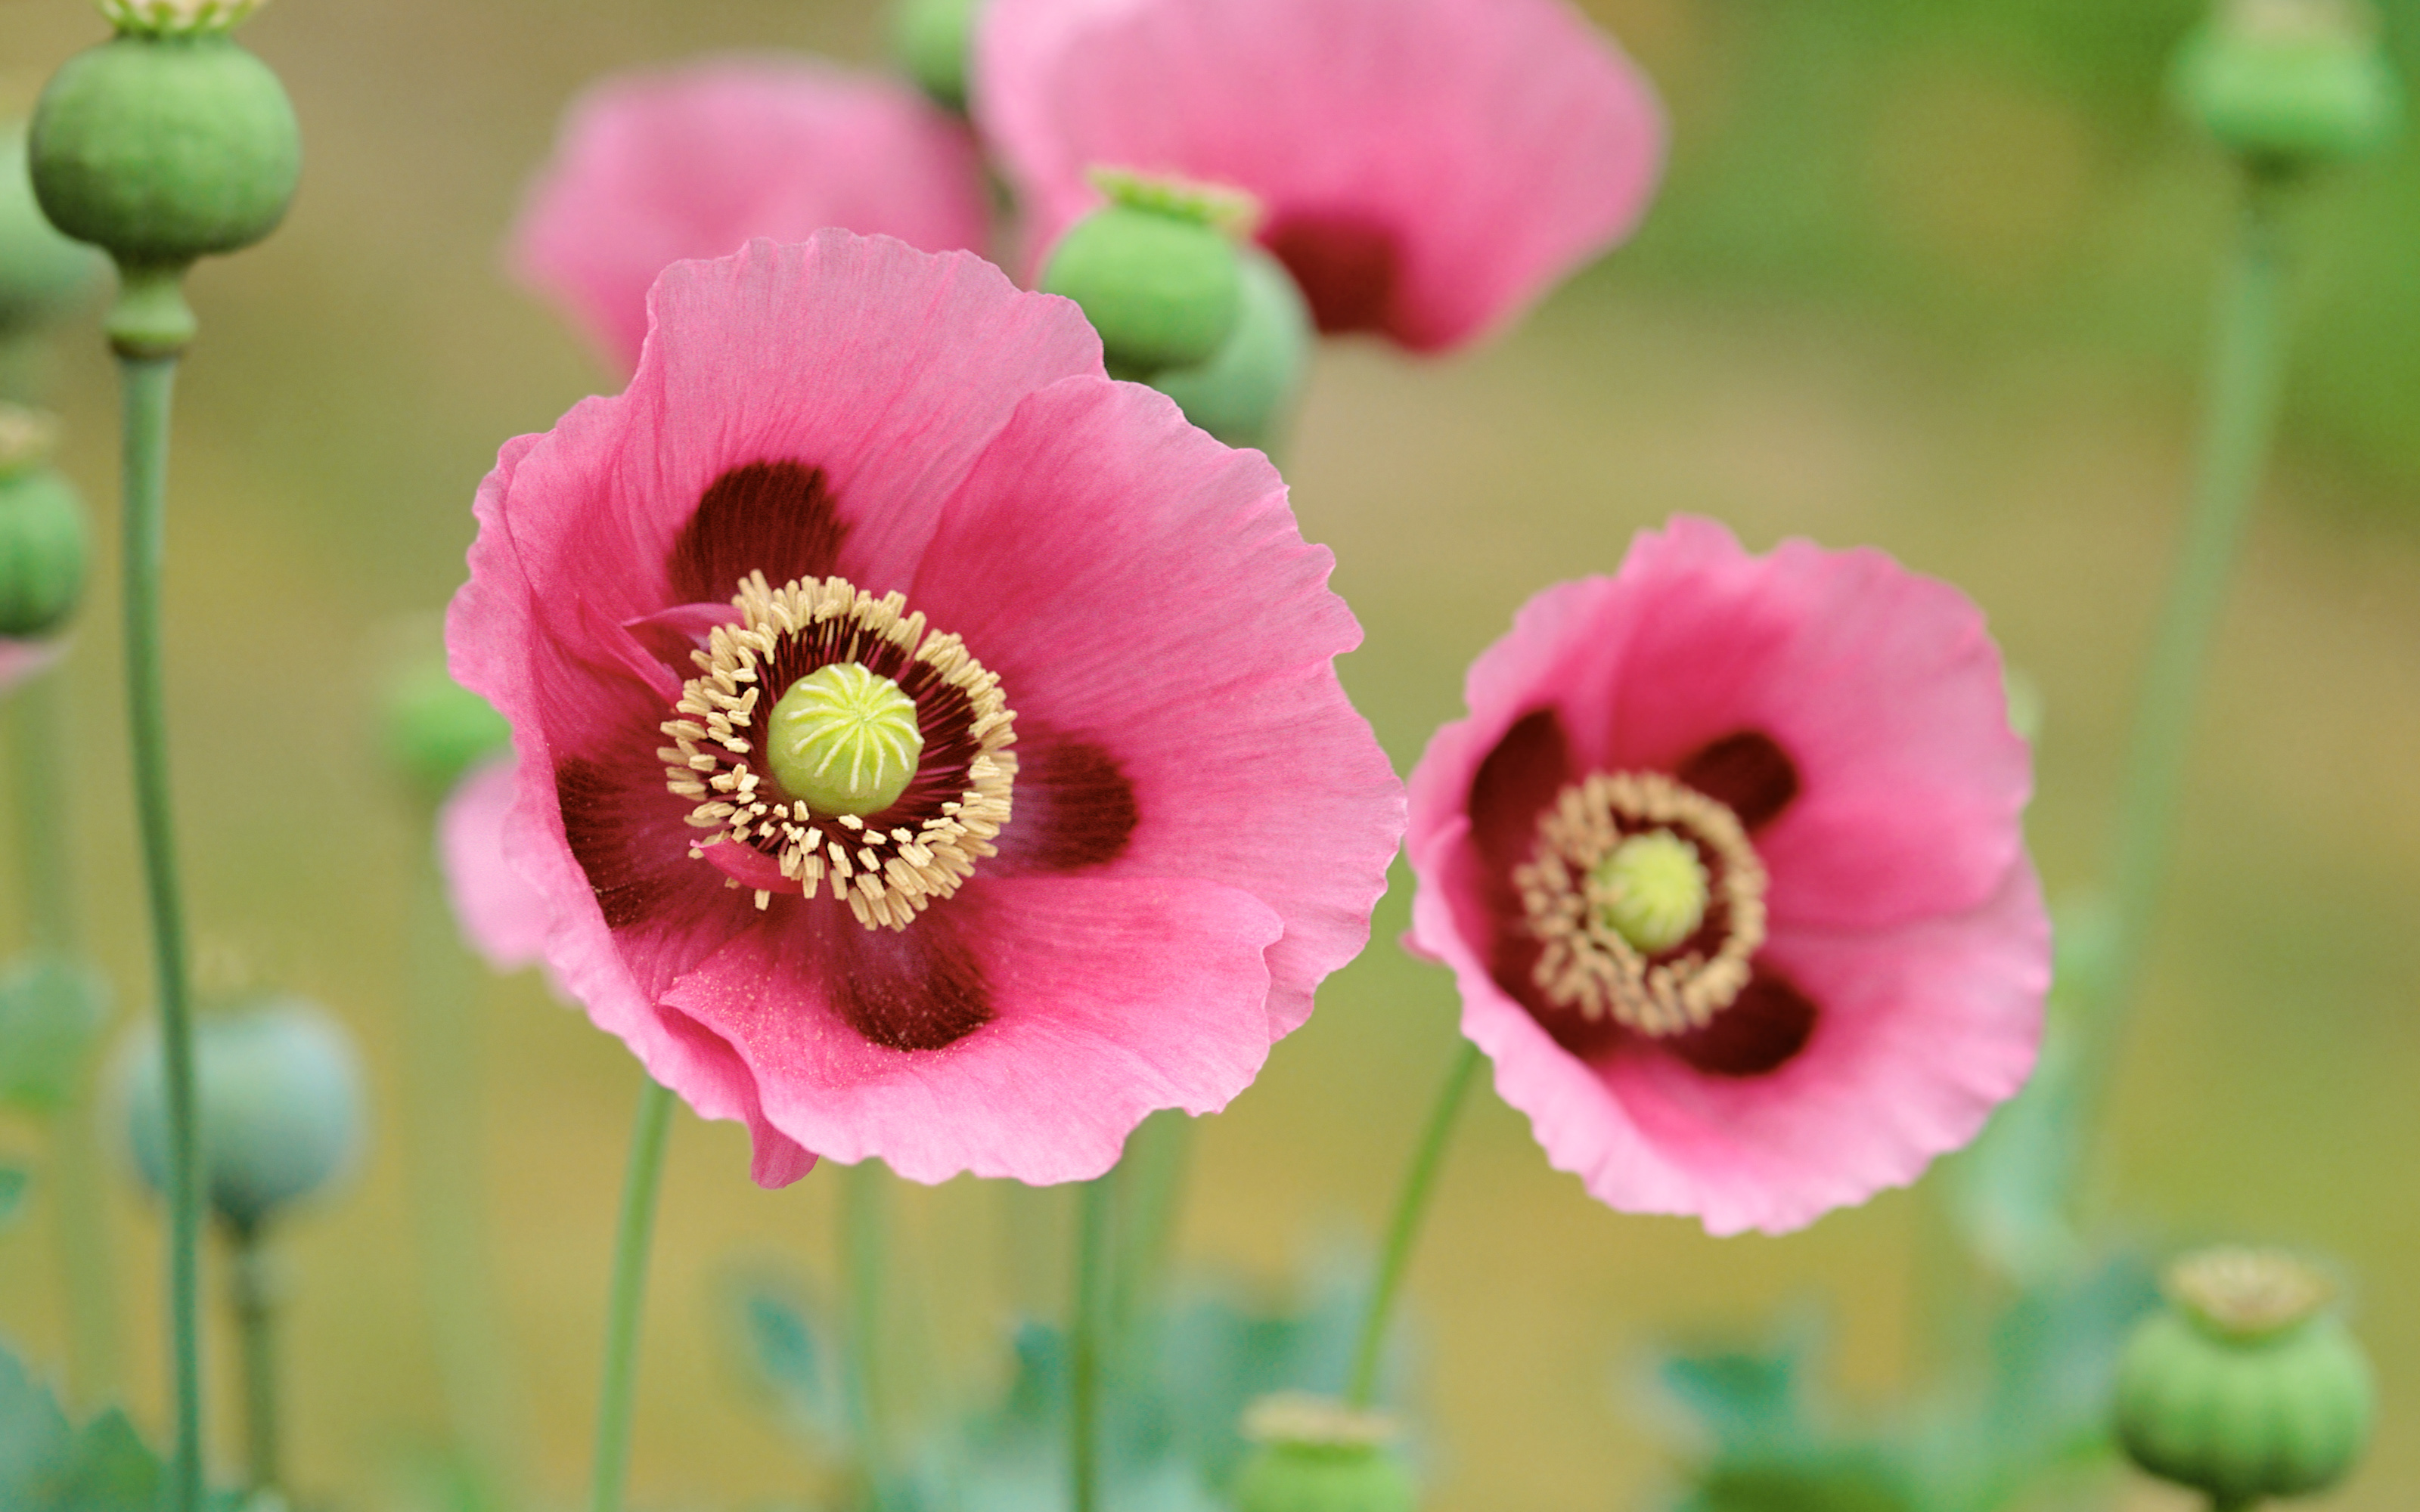 Poppies Flowers Wallpaper High Definition High Quality Widescreen